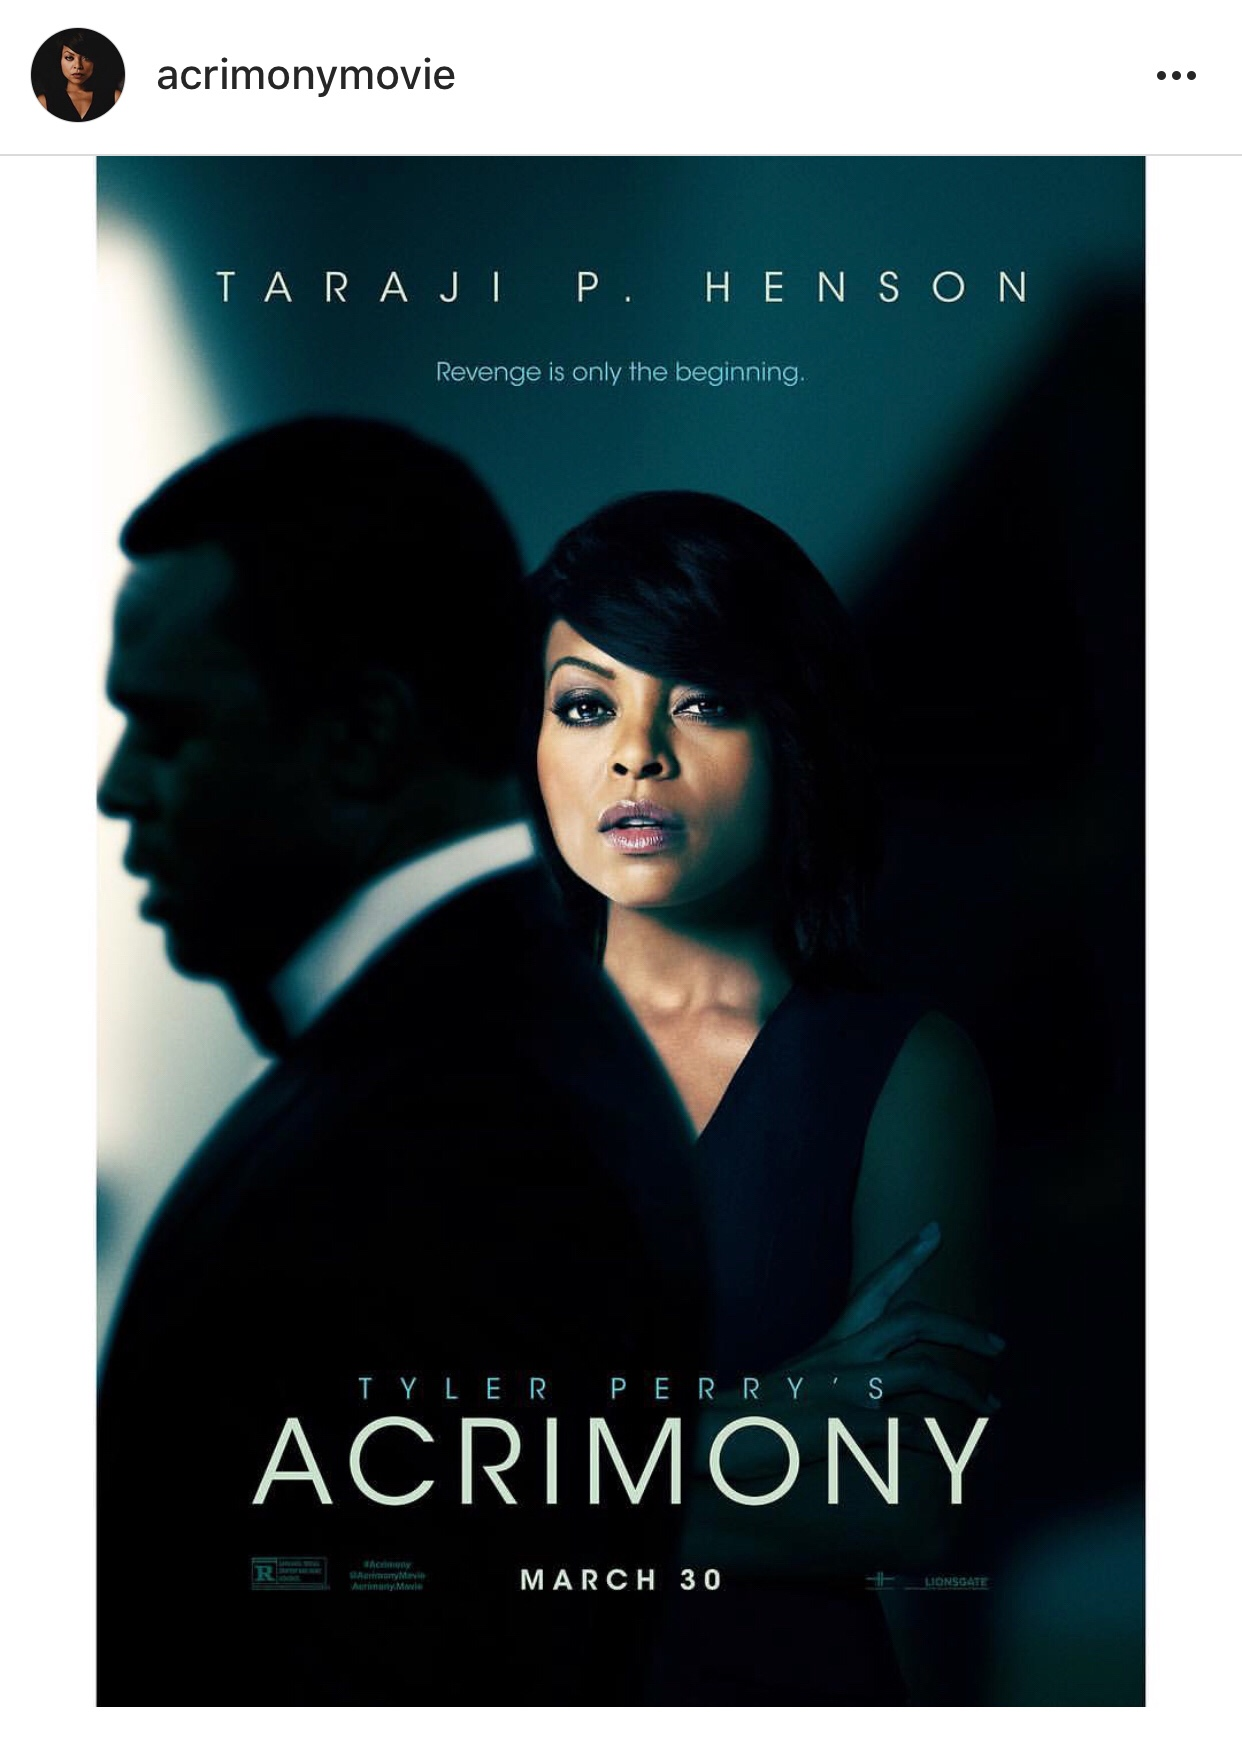 Acrimony movie review